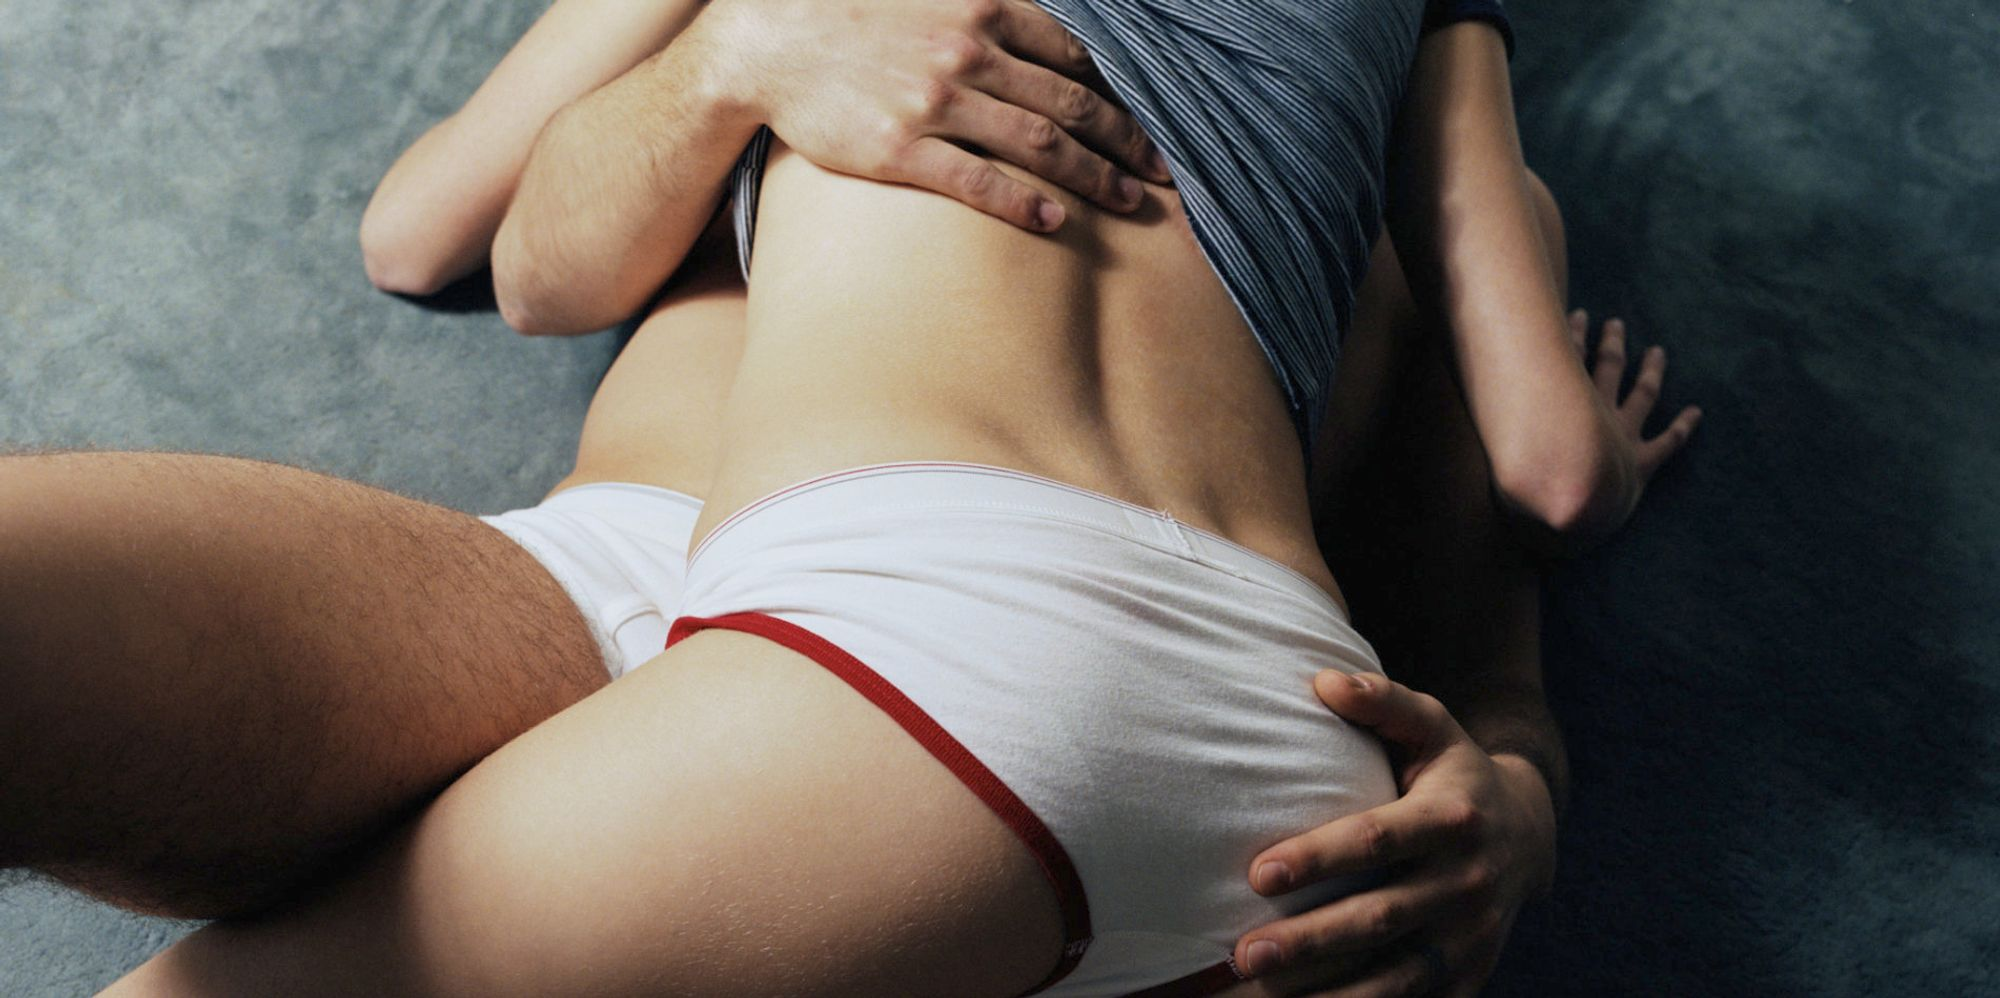 7 Ways To Save Your Sexless Marriage, According To Sex Therapists